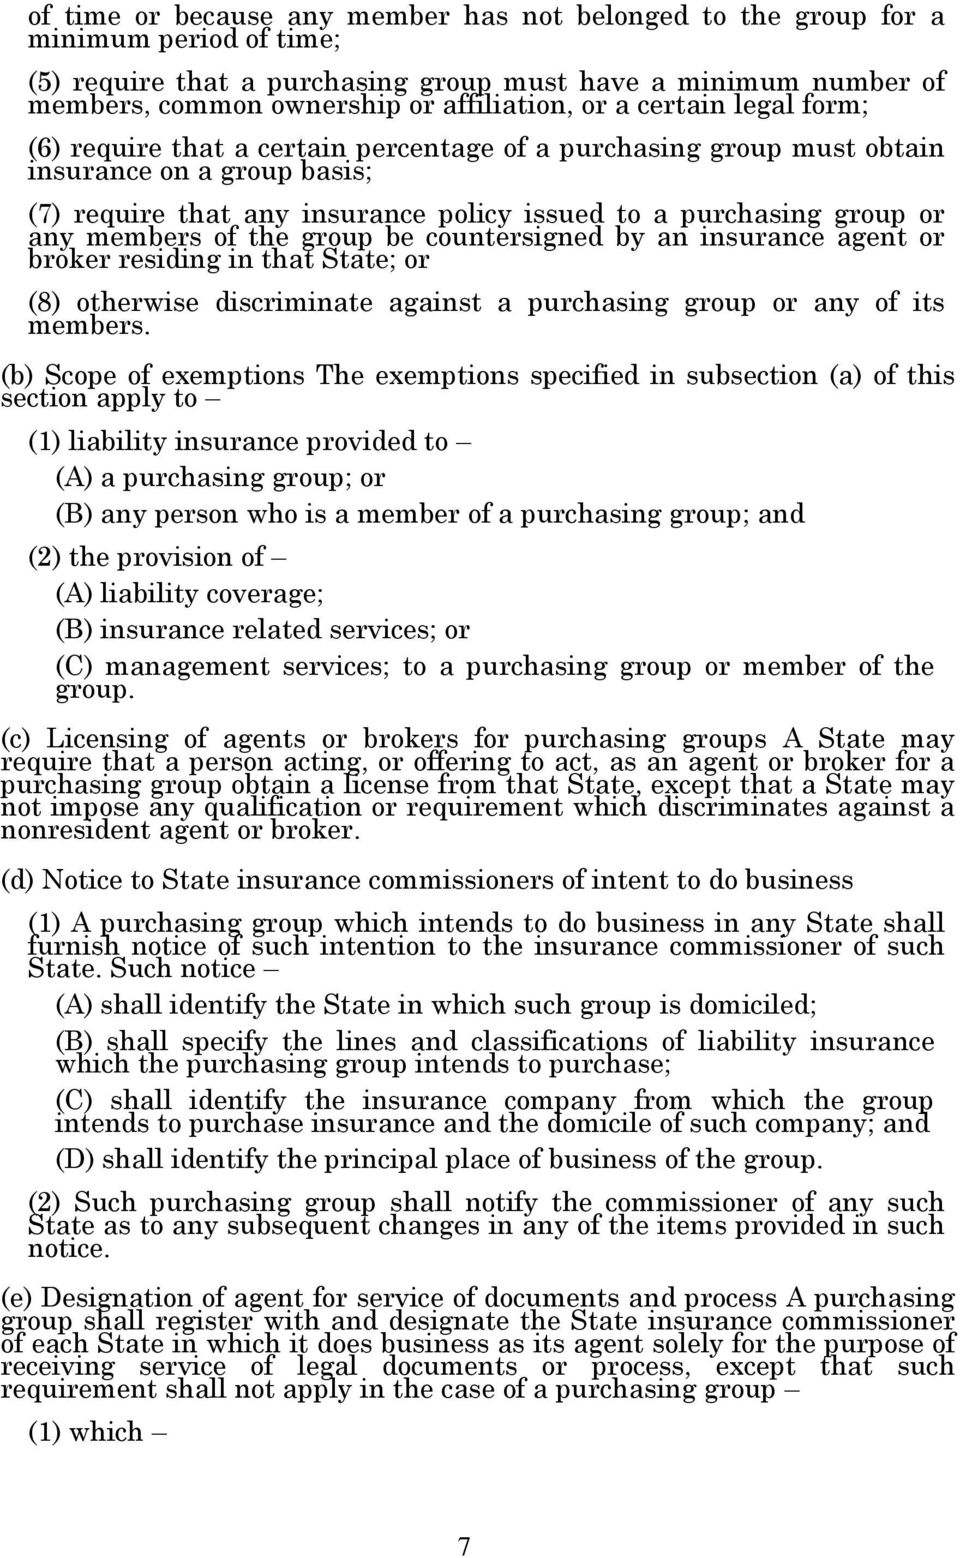 members of the group be countersigned by an insurance agent or broker residing in that State; or (8) otherwise discriminate against a purchasing group or any of its members.